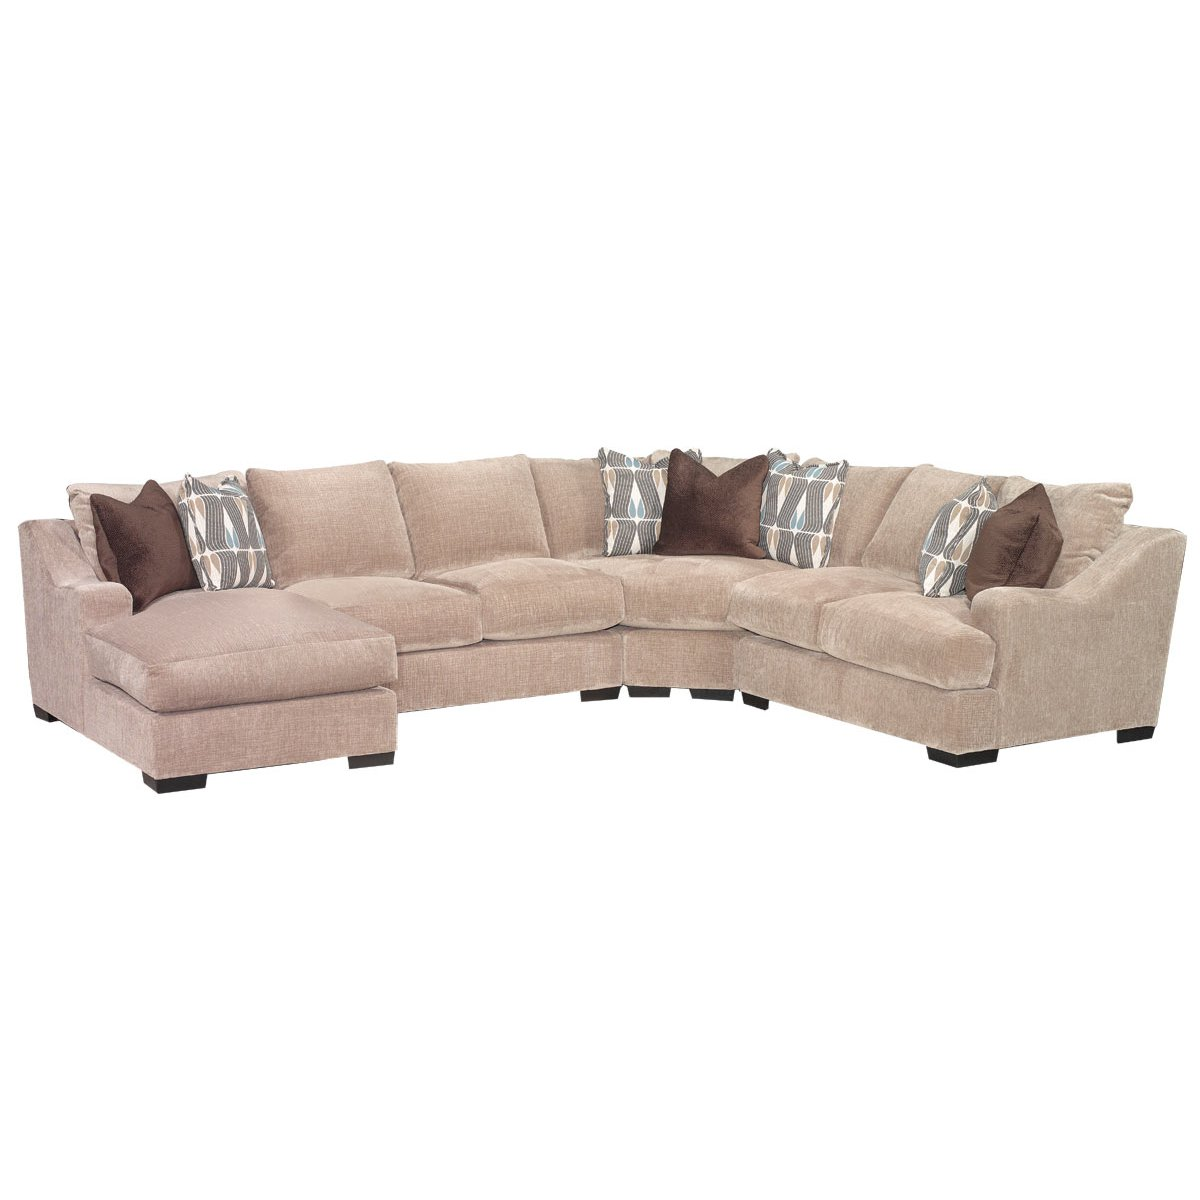 Brown Casual Classic 4 Piece Sectional Sofa   Monarch | RC Willey Furniture  Store